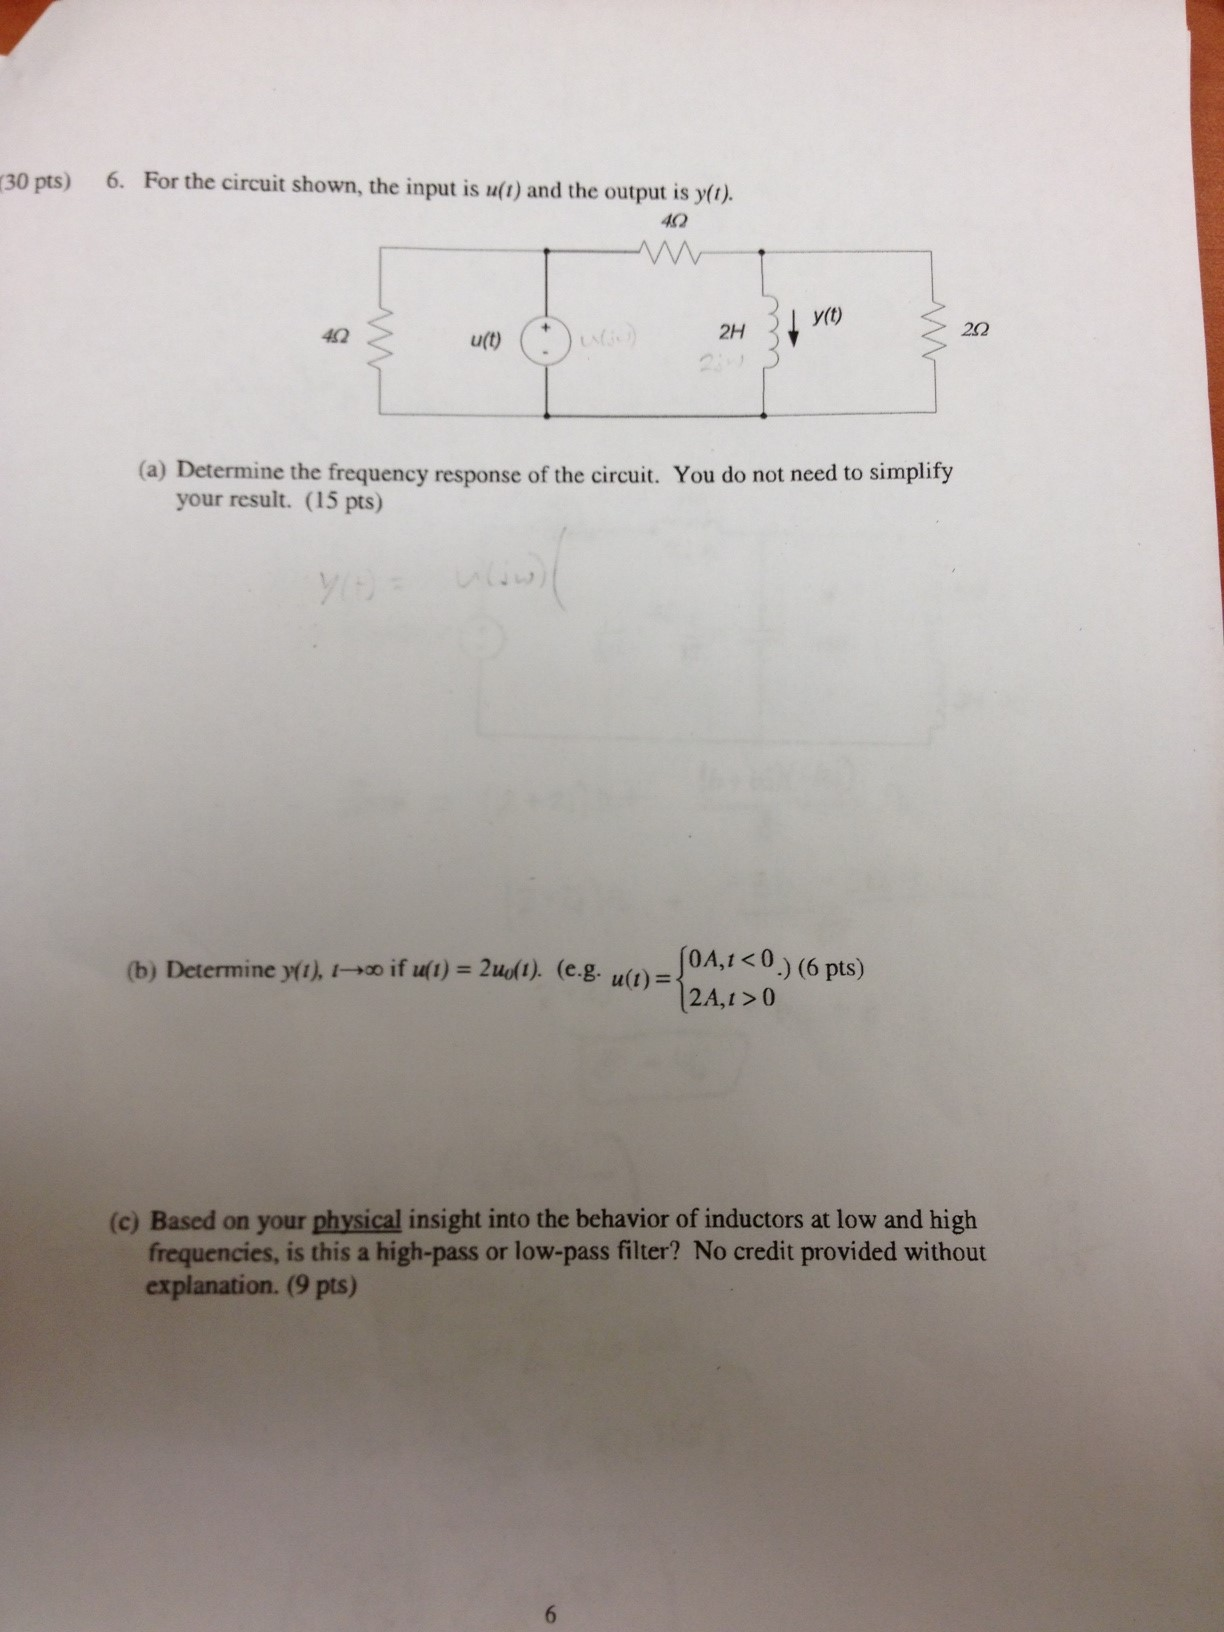 For the circuit shown, the input is u(t) and the o